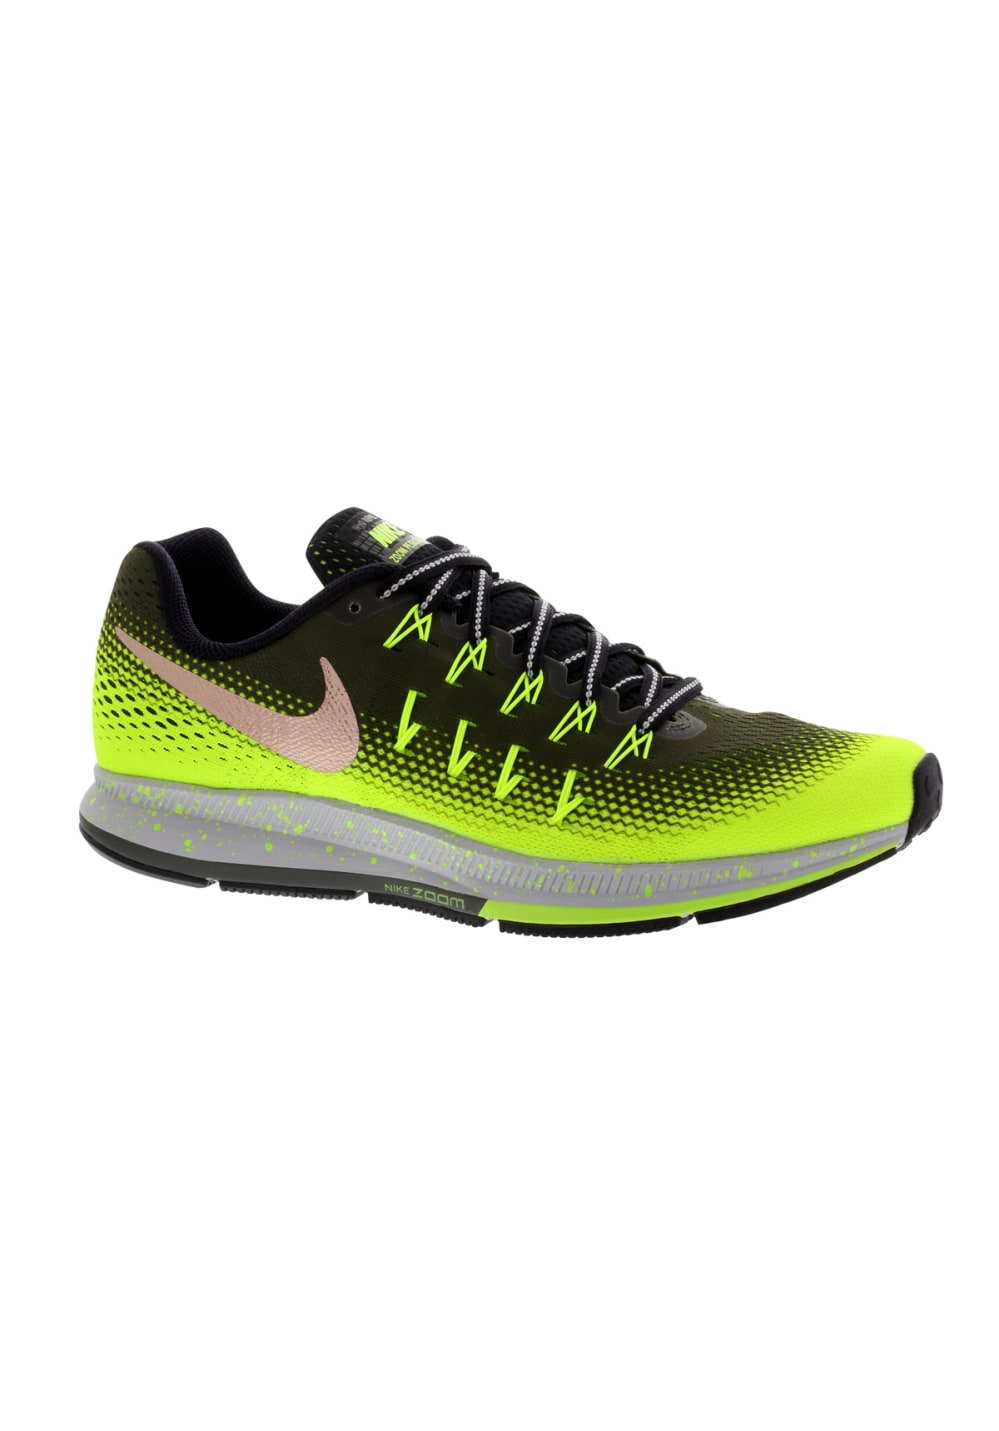 Nike Air Zoom Pegasus 33 Shield - Running shoes for Men - Green